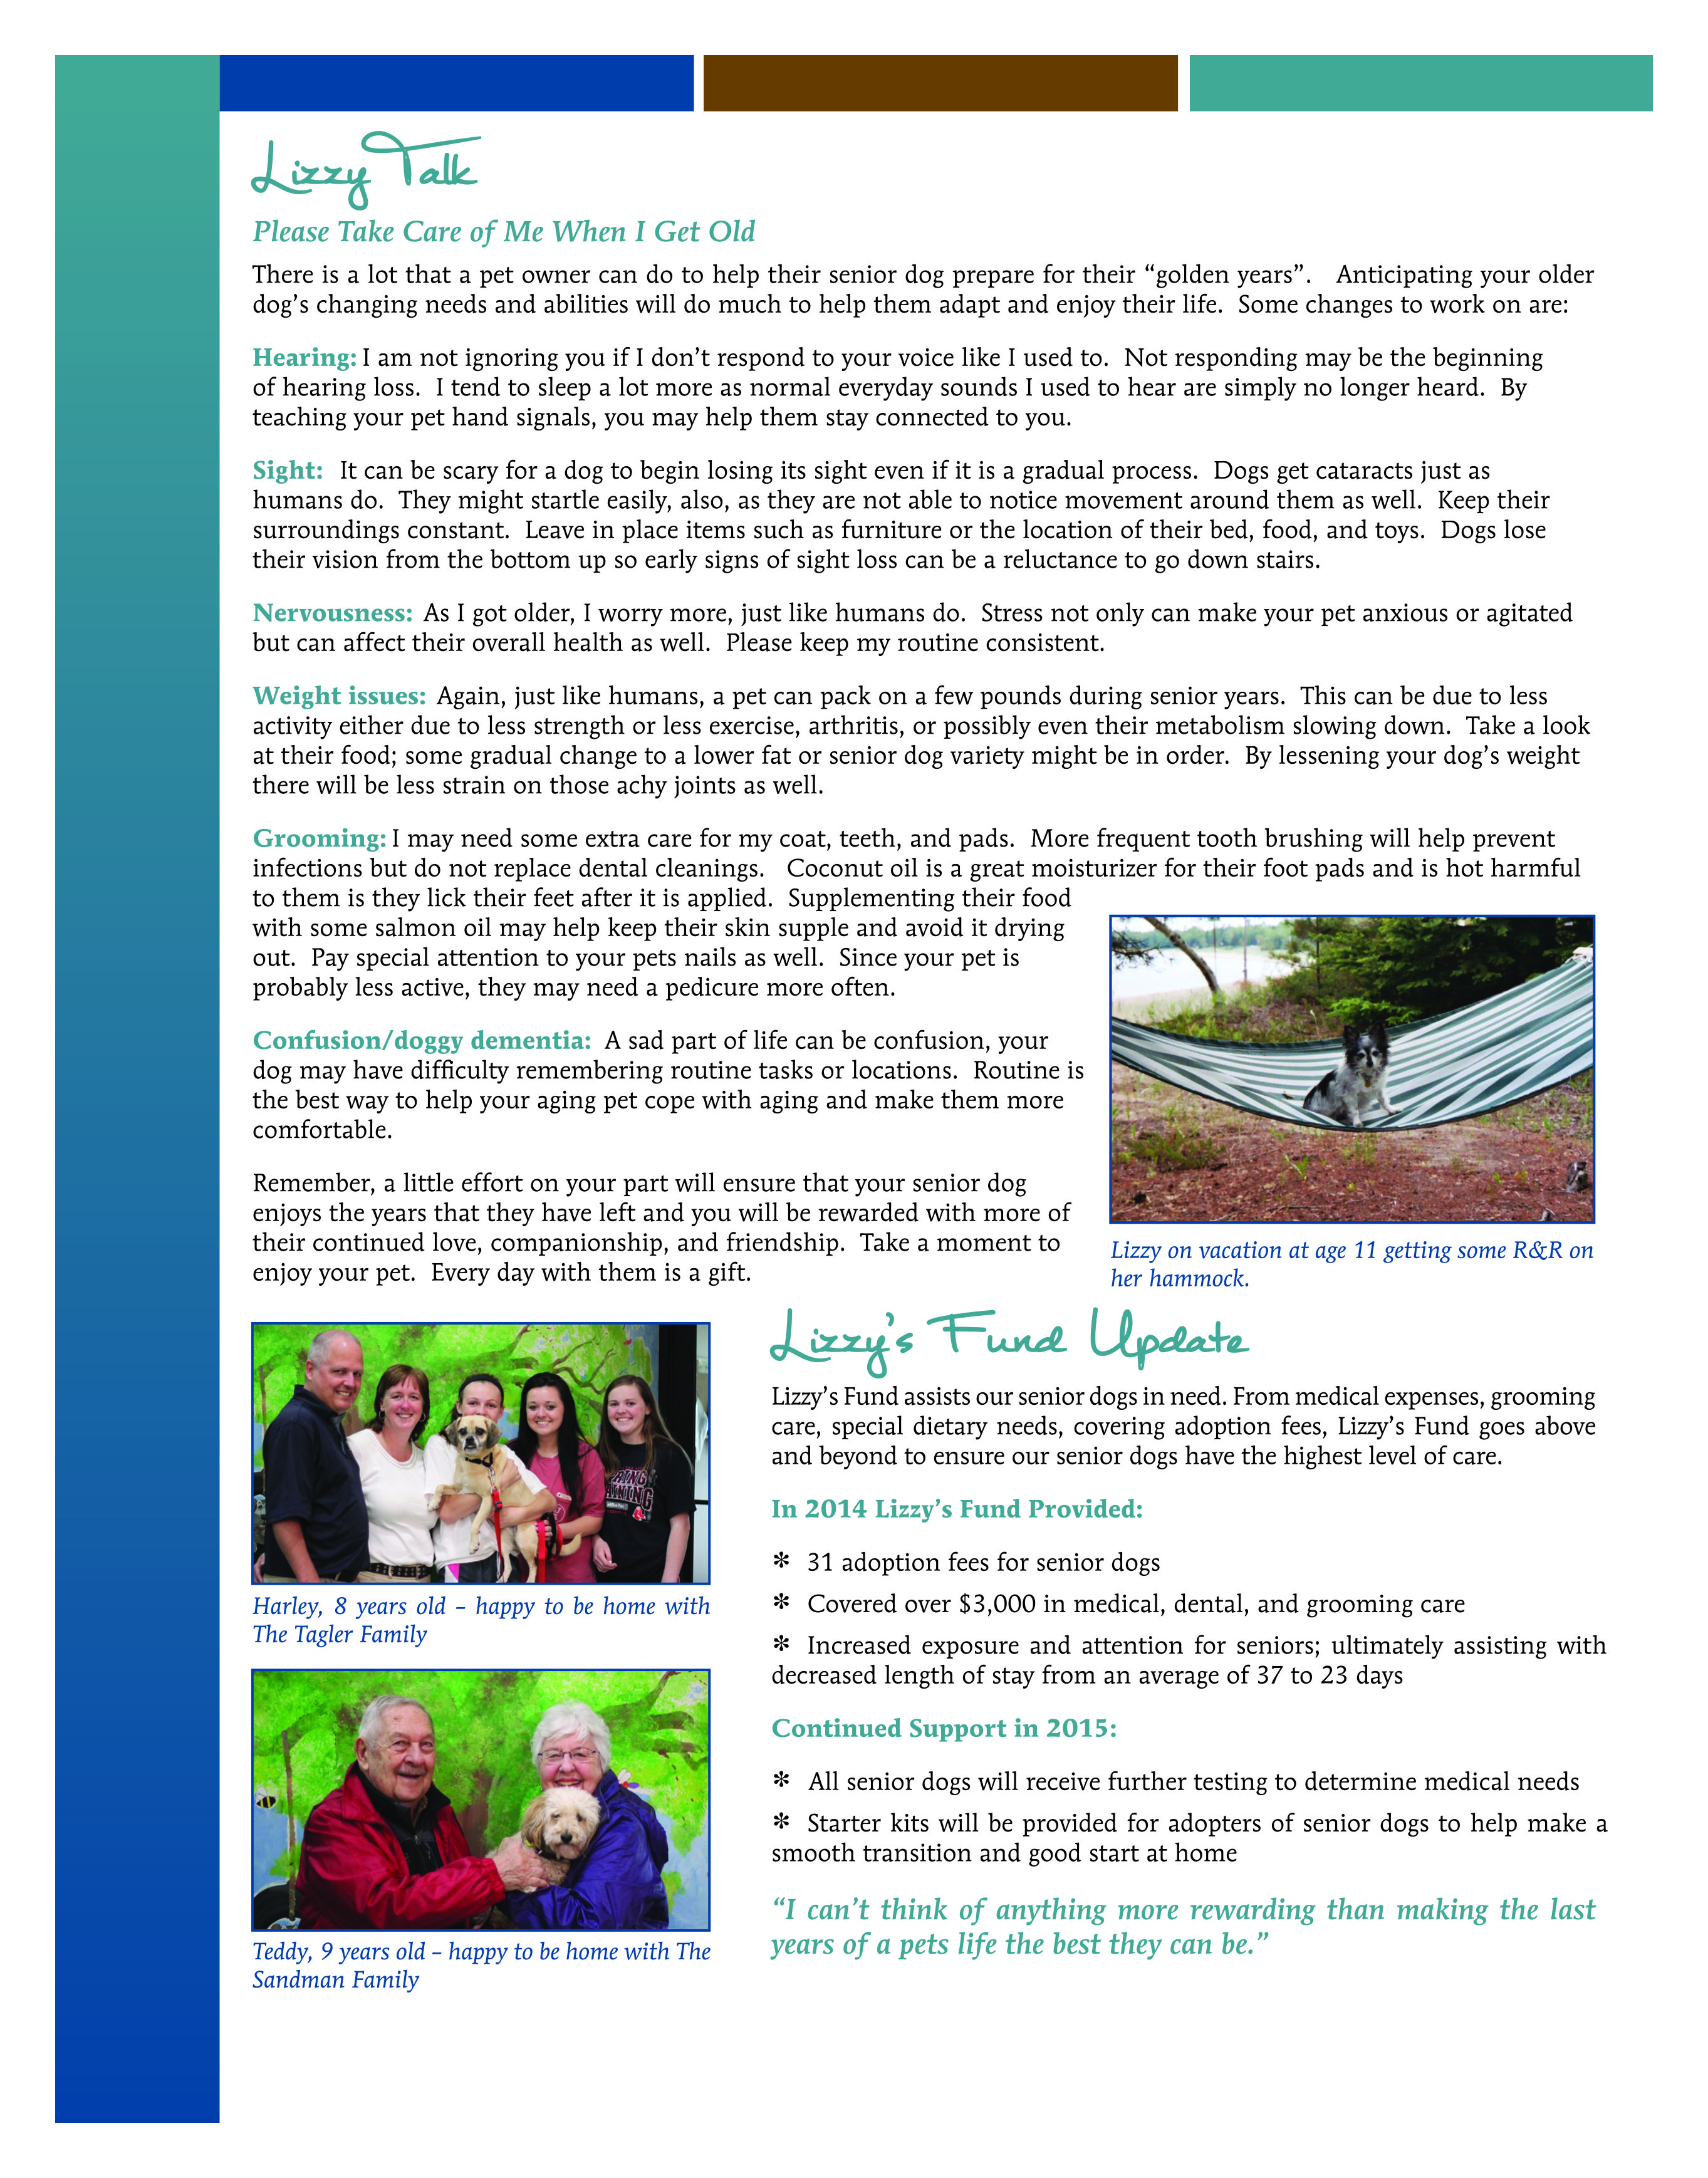 NAHS Fall 2015 Newsletter Lizzy Talk R